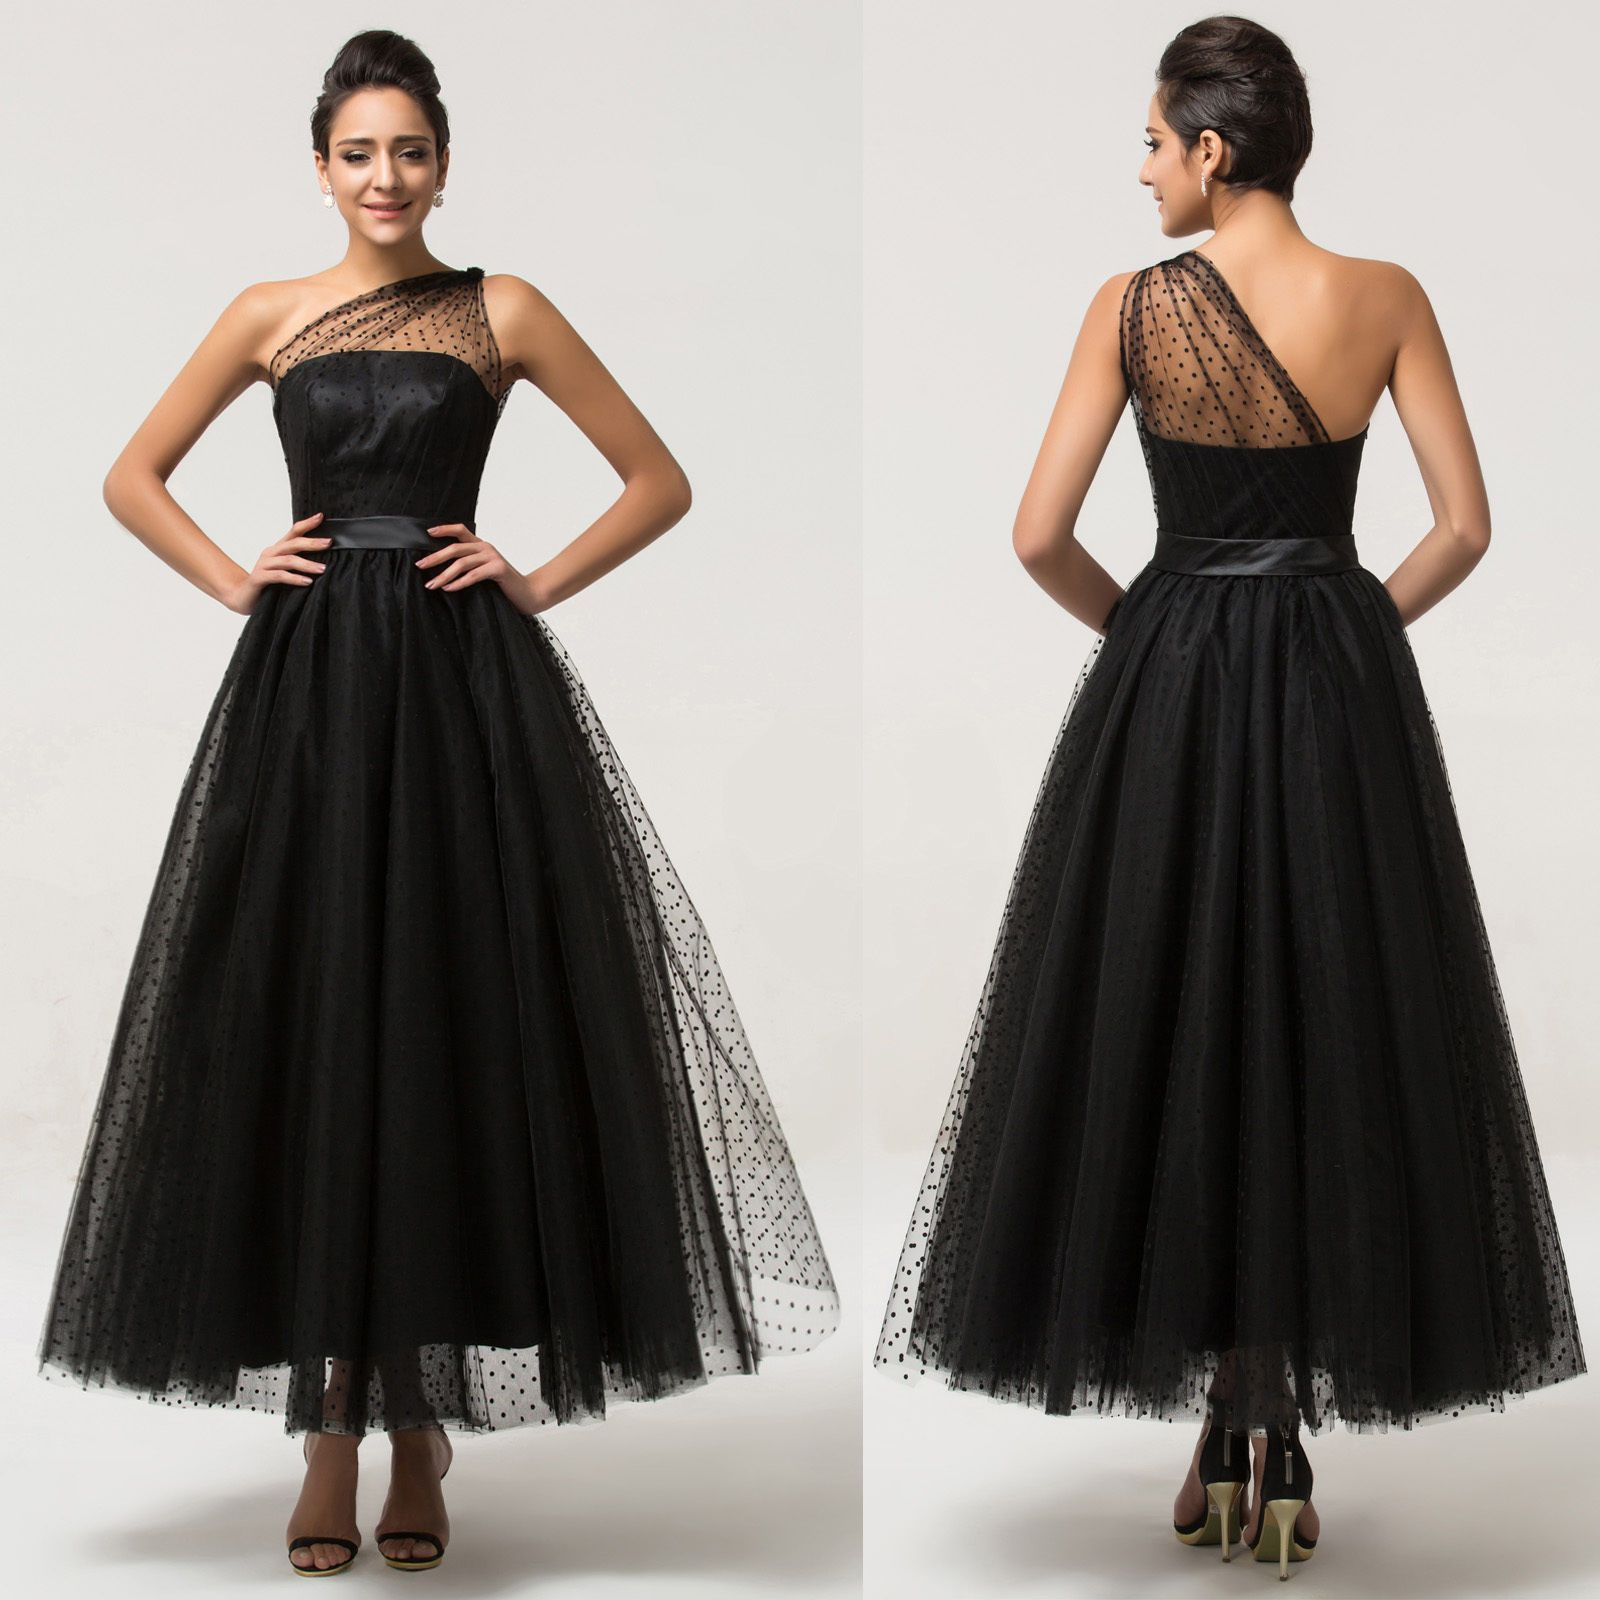 LONG Black Vintage Formal Evening Ball Gown Cocktail Prom Party ...